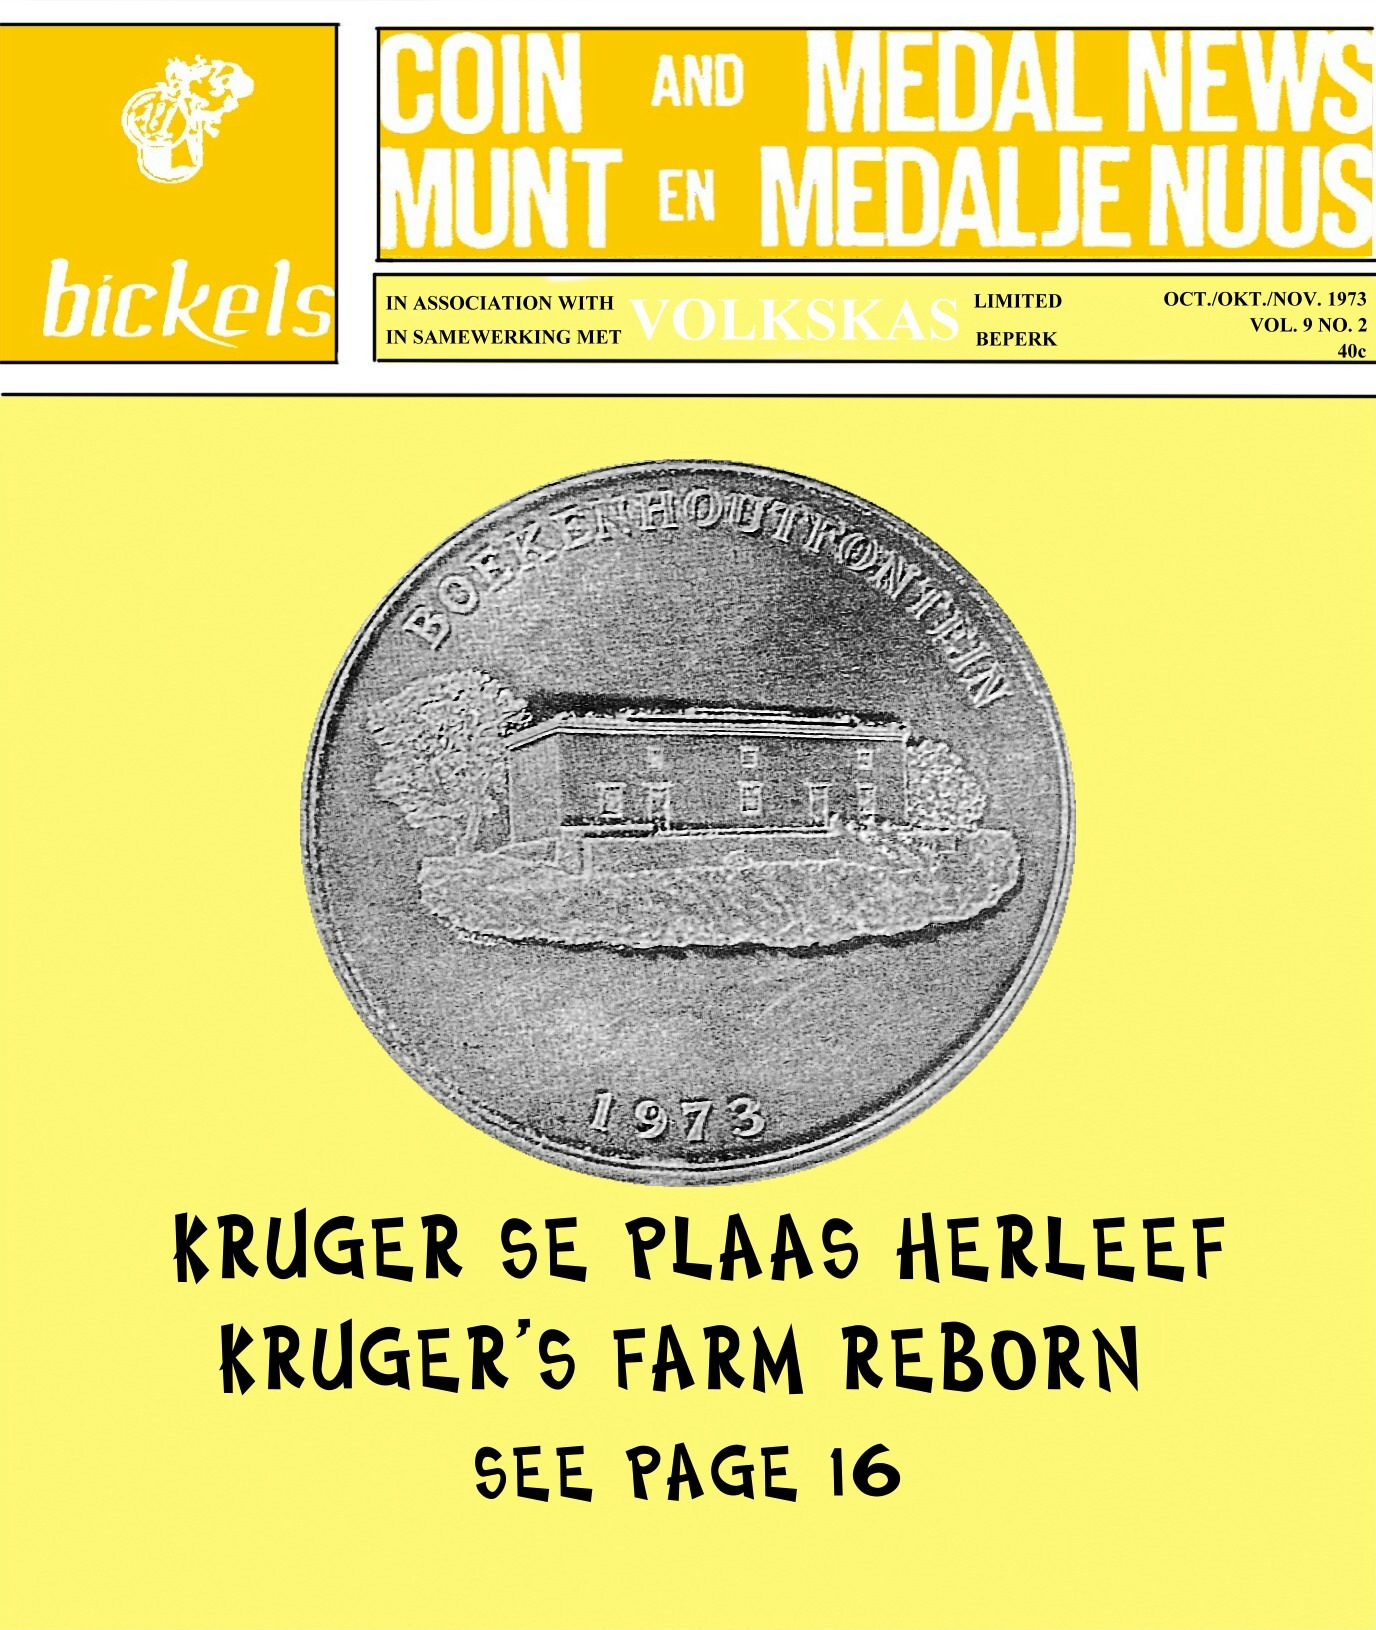 Bickels Coin & Medal News October November 1973 Vol 9 No 2